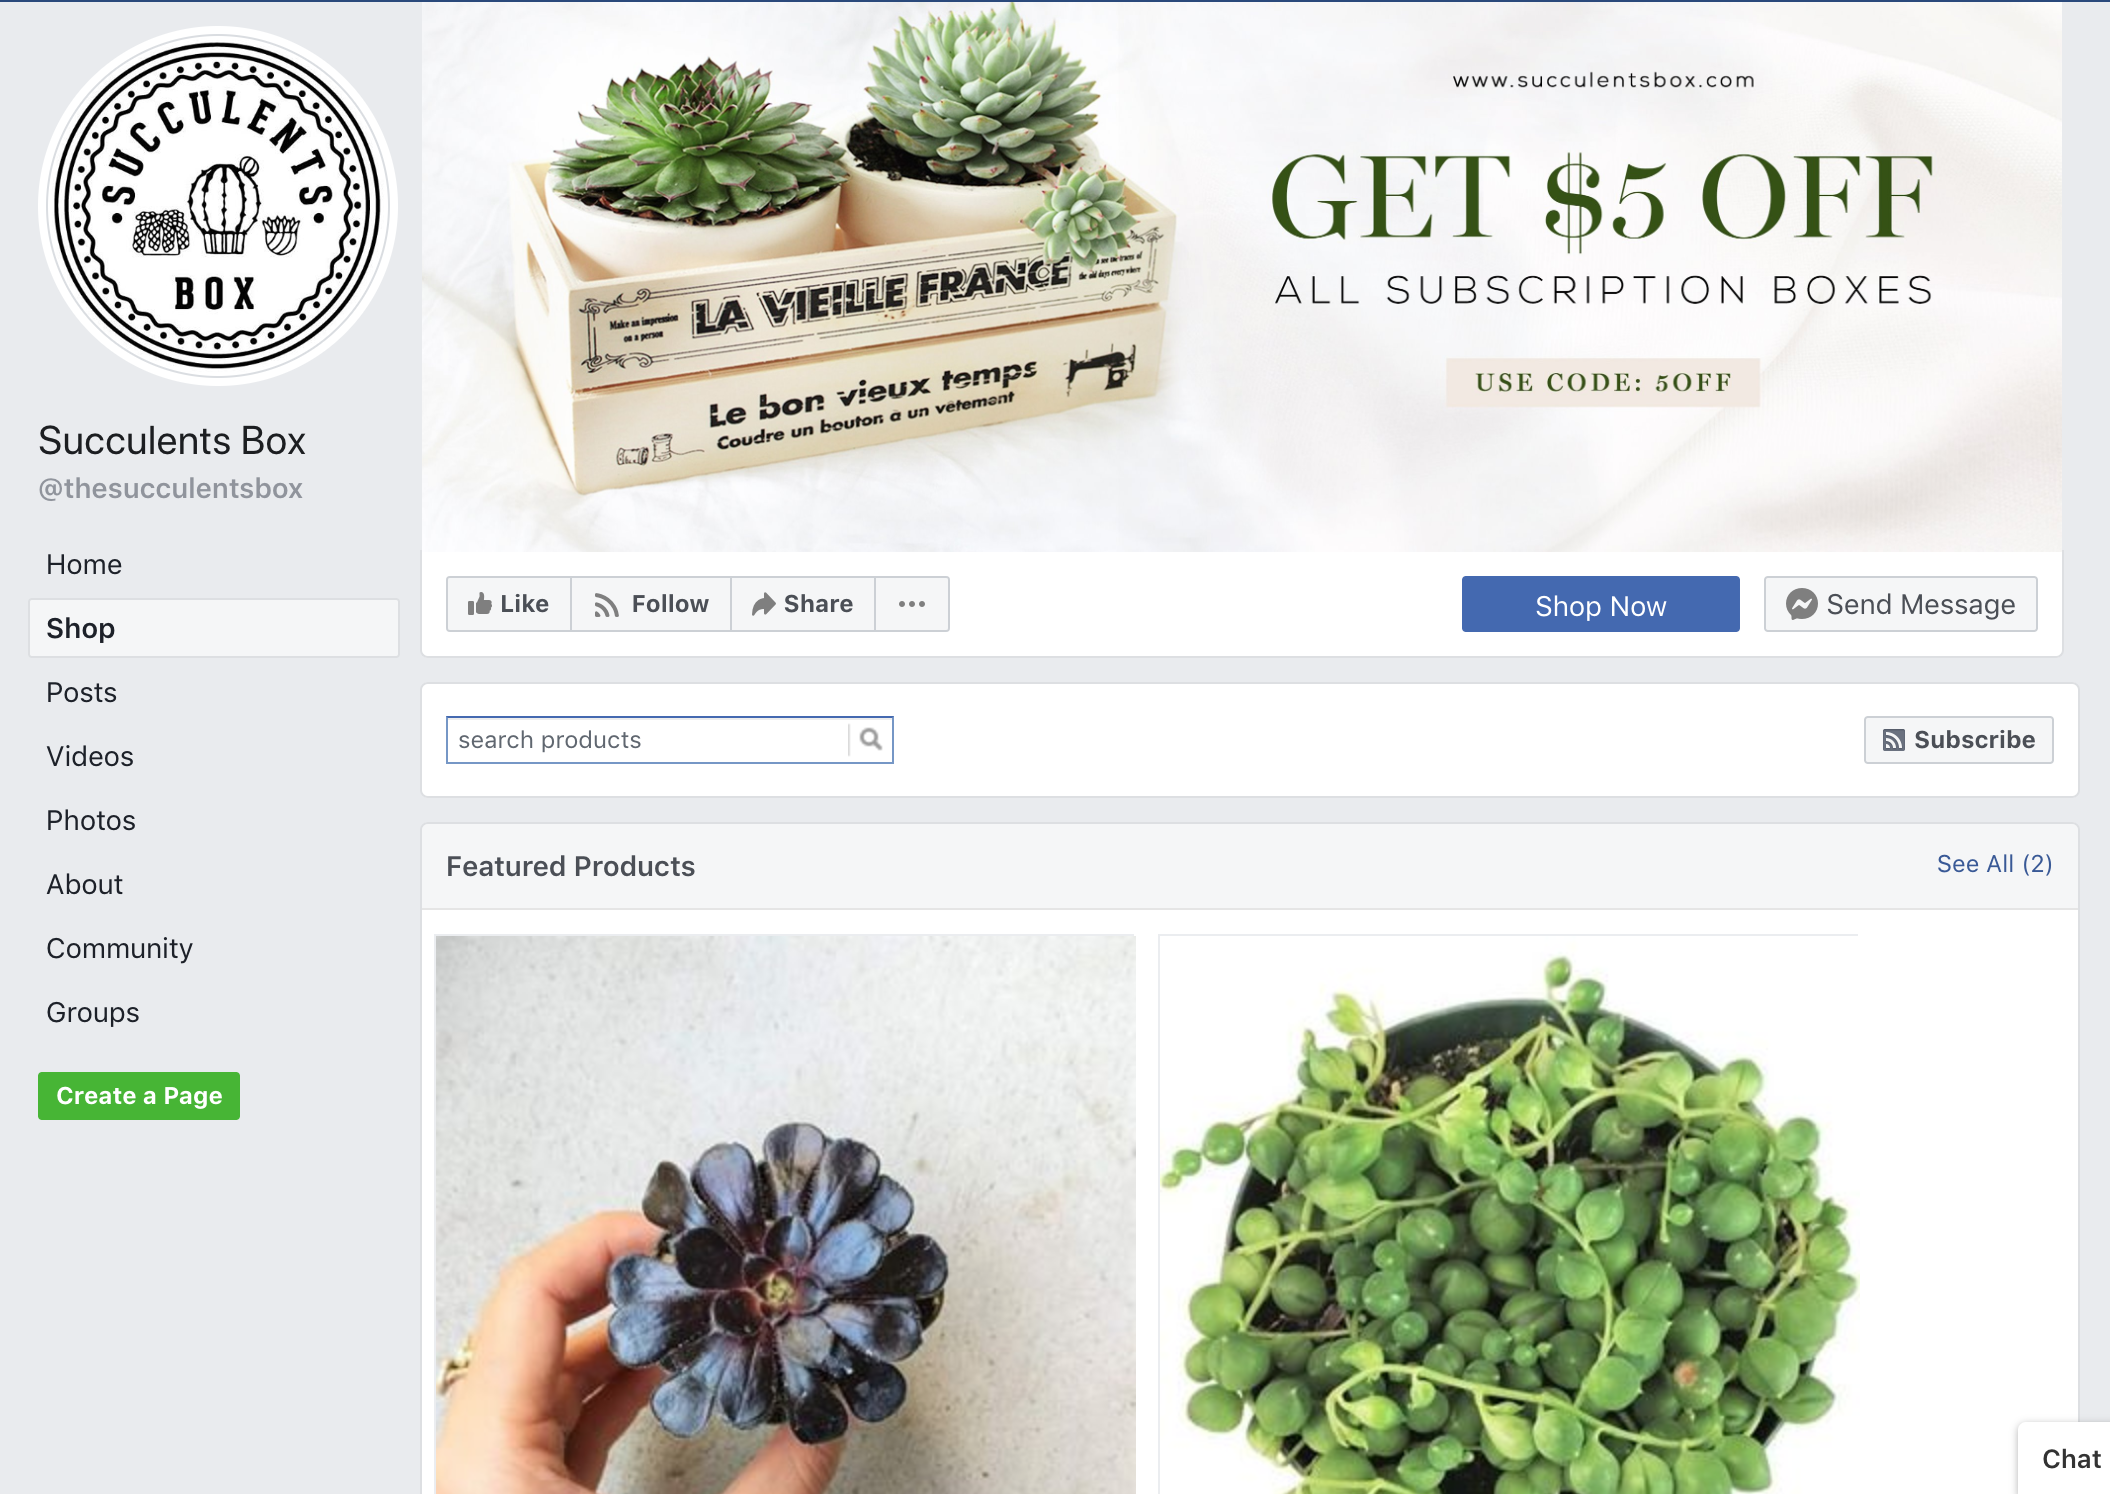 Facebook shop of Succulents Box